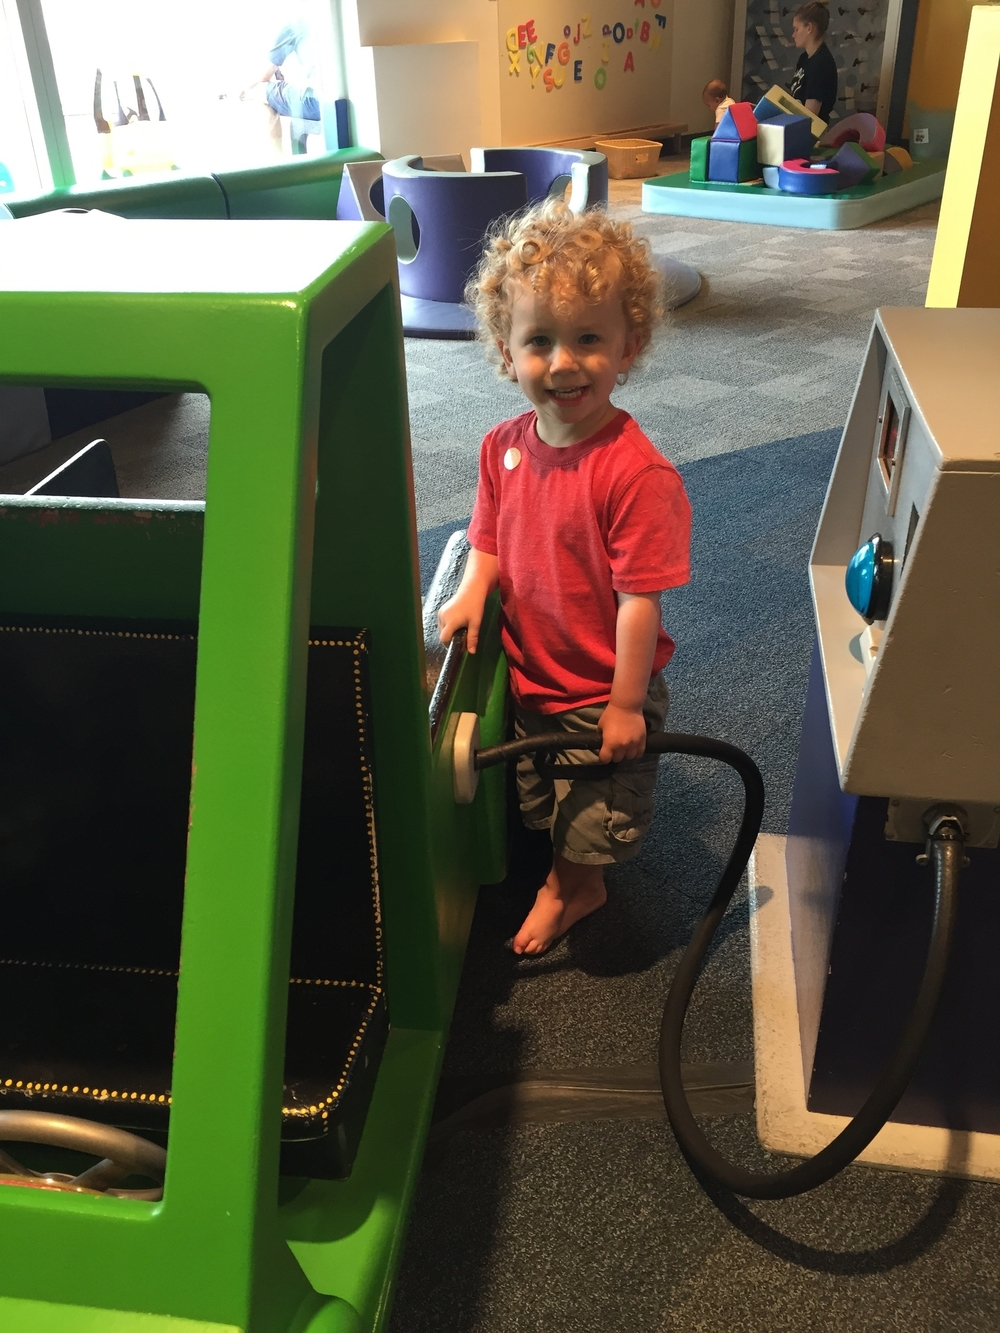 Recent visit to the Houston Children's Museum